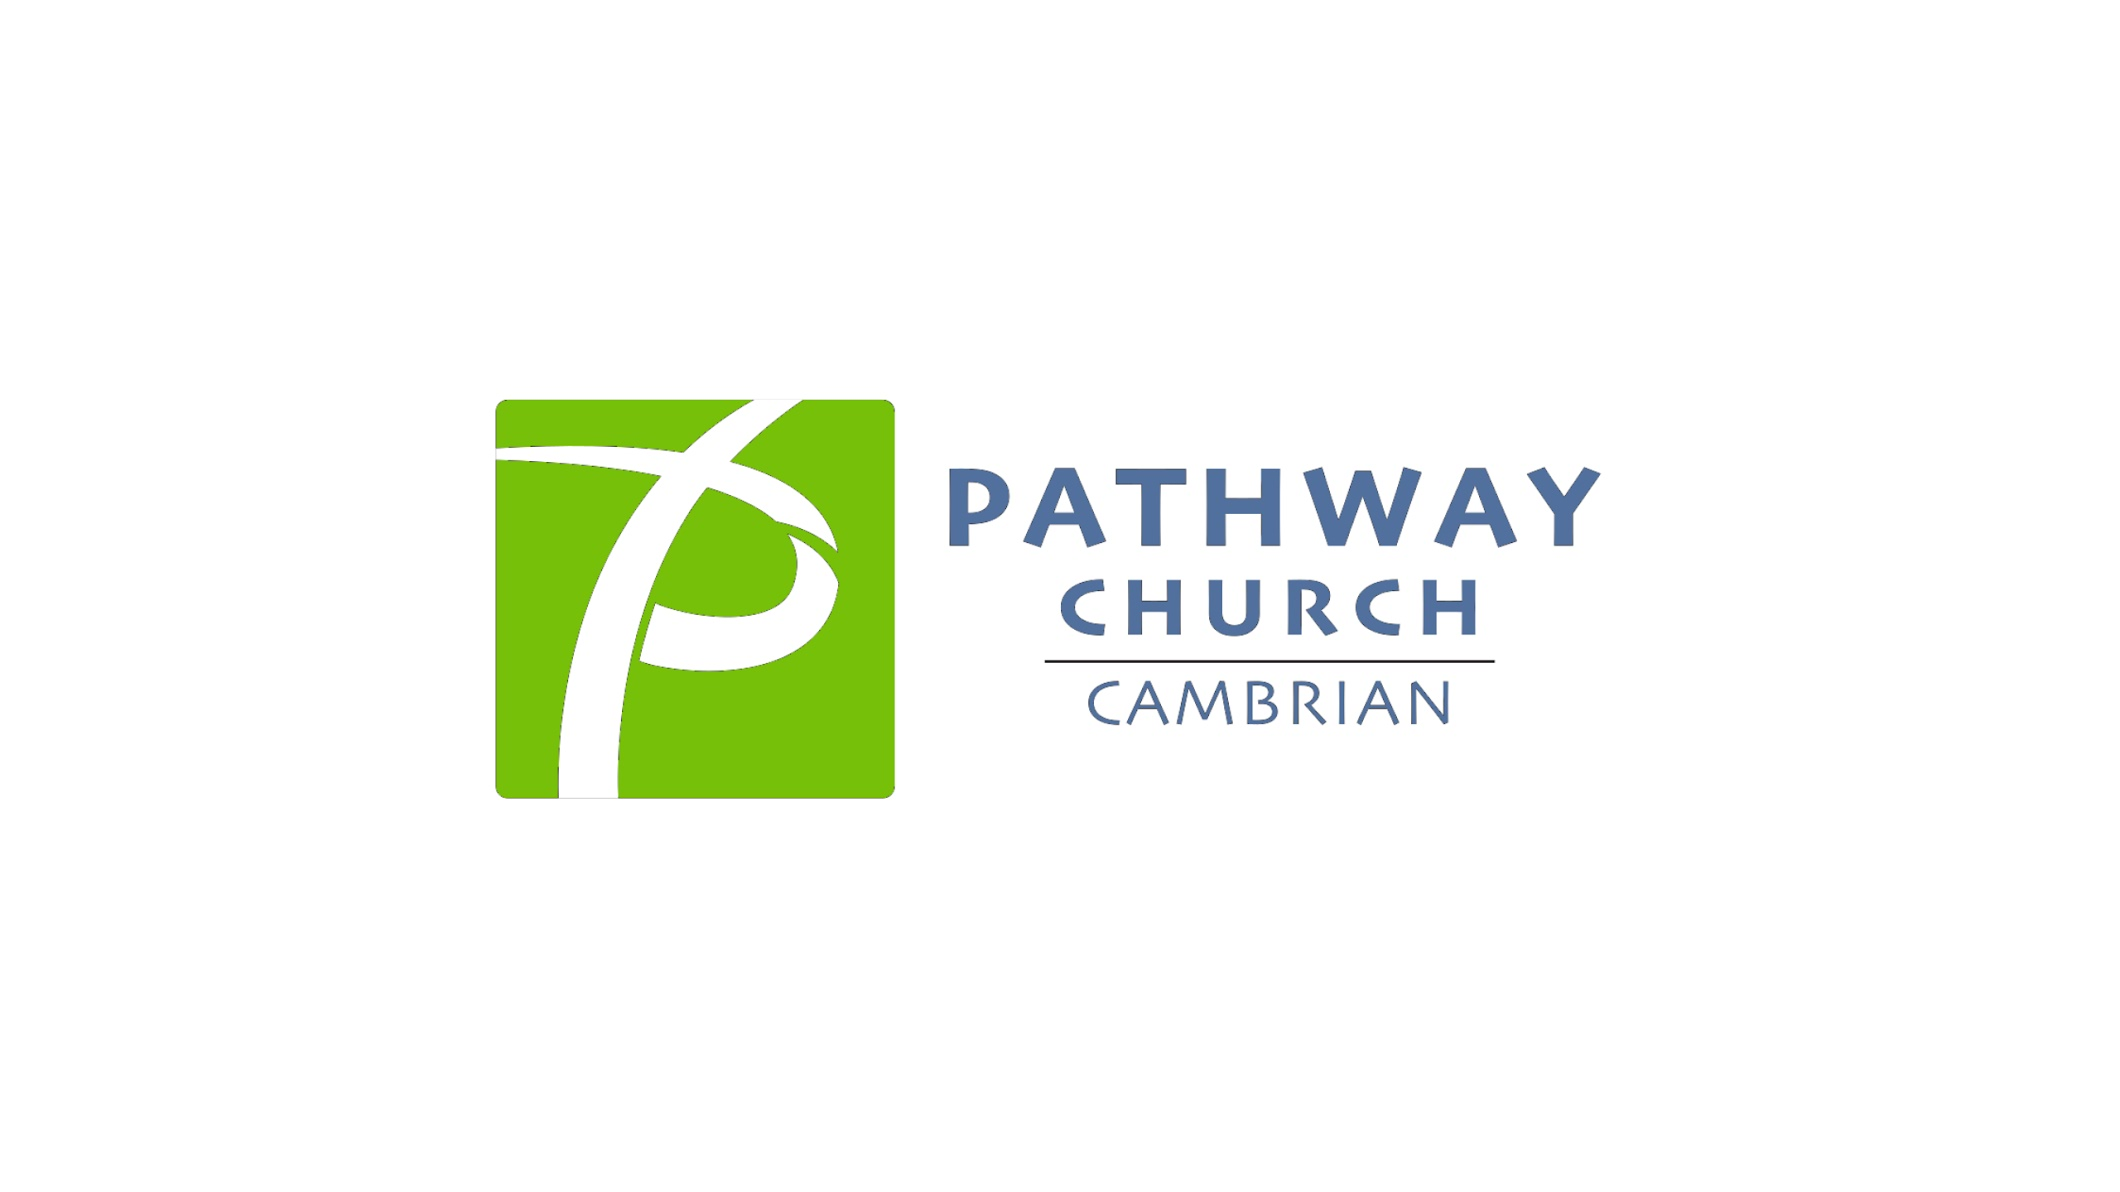 Pathway Church - Cambrian